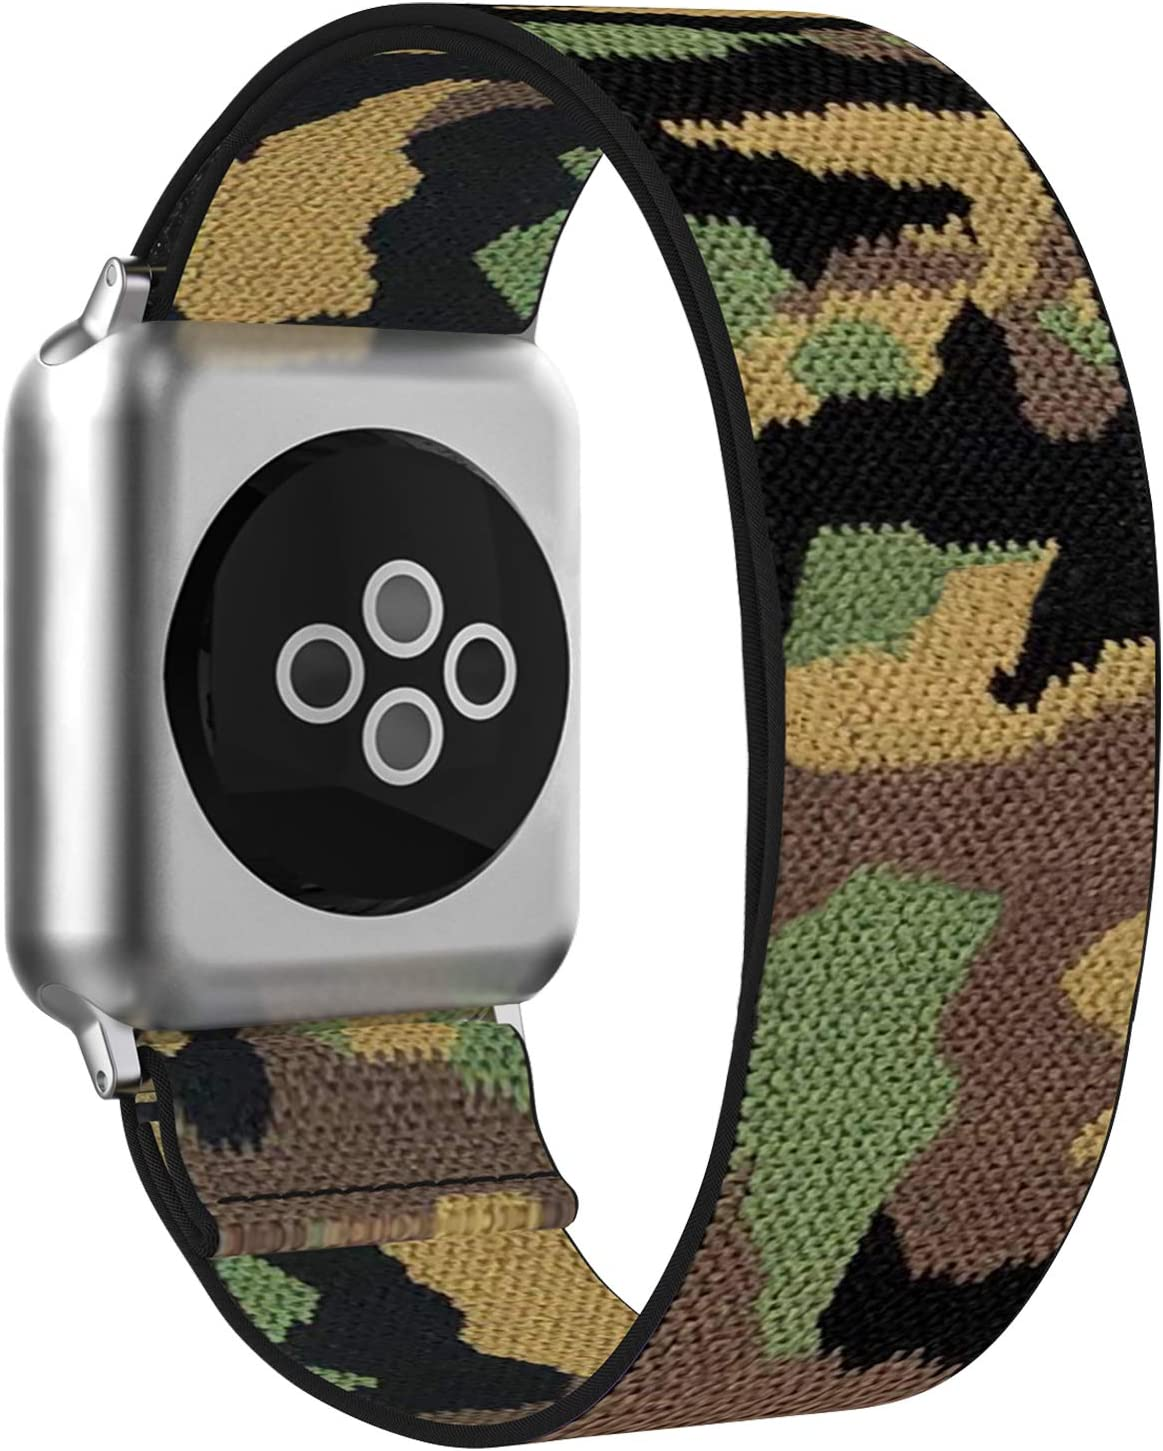 BMBEAR Stretchy Strap Loop Compatible with Apple Watch Band 42mm 44mm iWatch Series 6/5/4/3/2/1 Camouflage